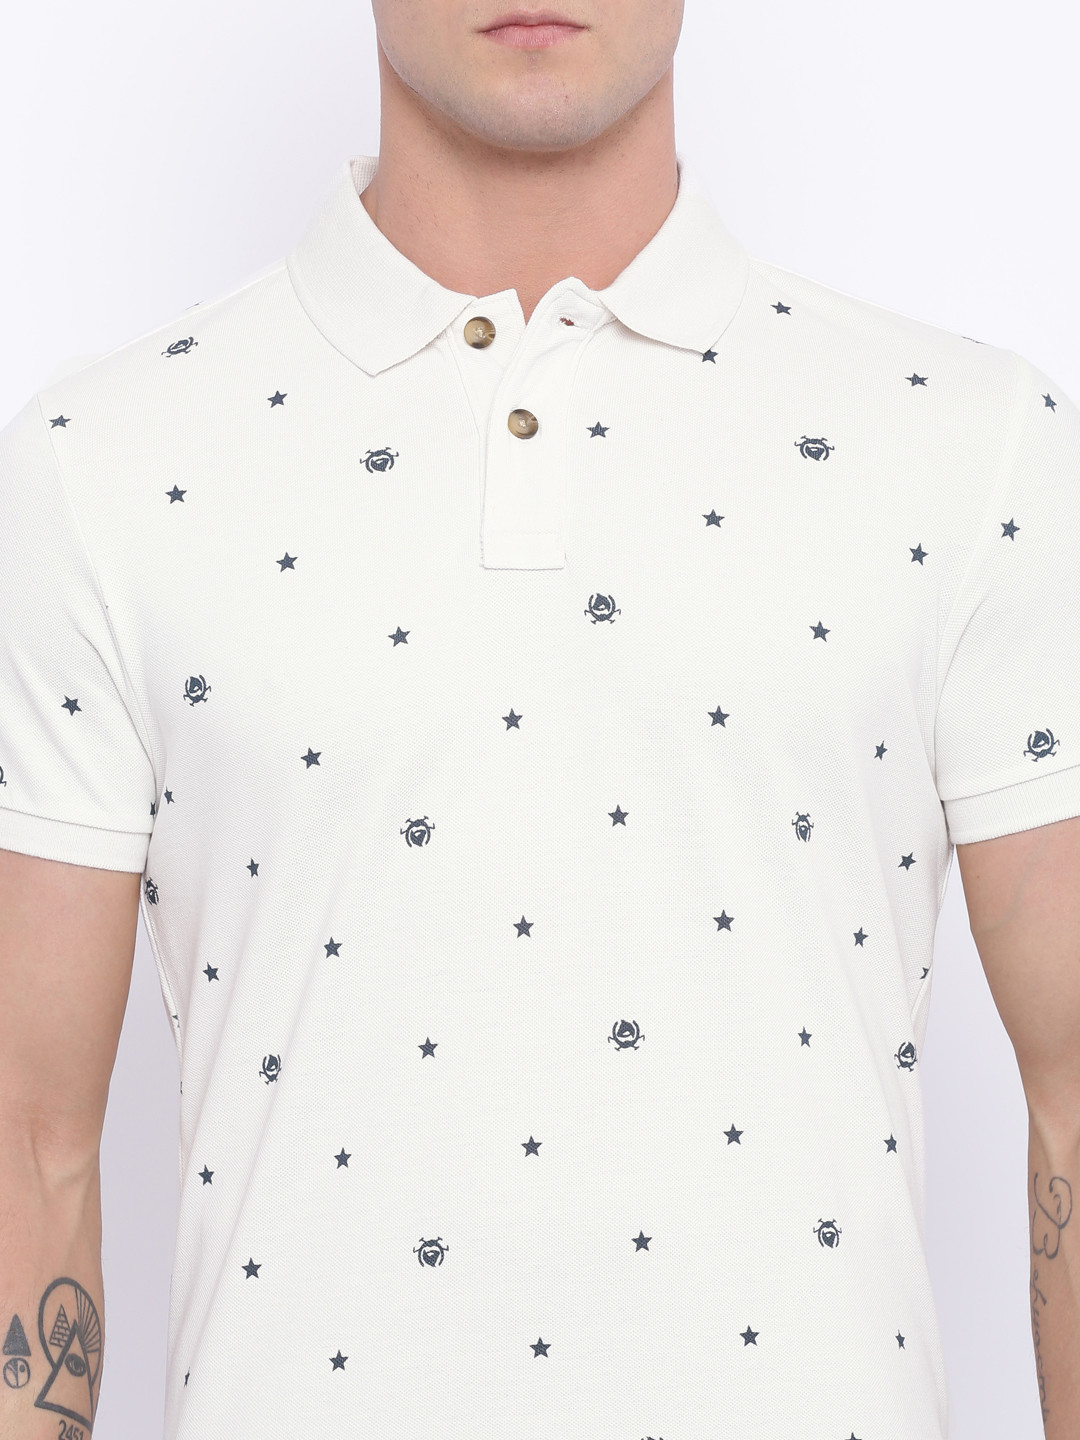 Cotton Connection is one of the popular clothing store in the United States and well known for the wholesale T-shirts, blank T-shirts and blank tees. Order you bulk quantity of T-shirts now!